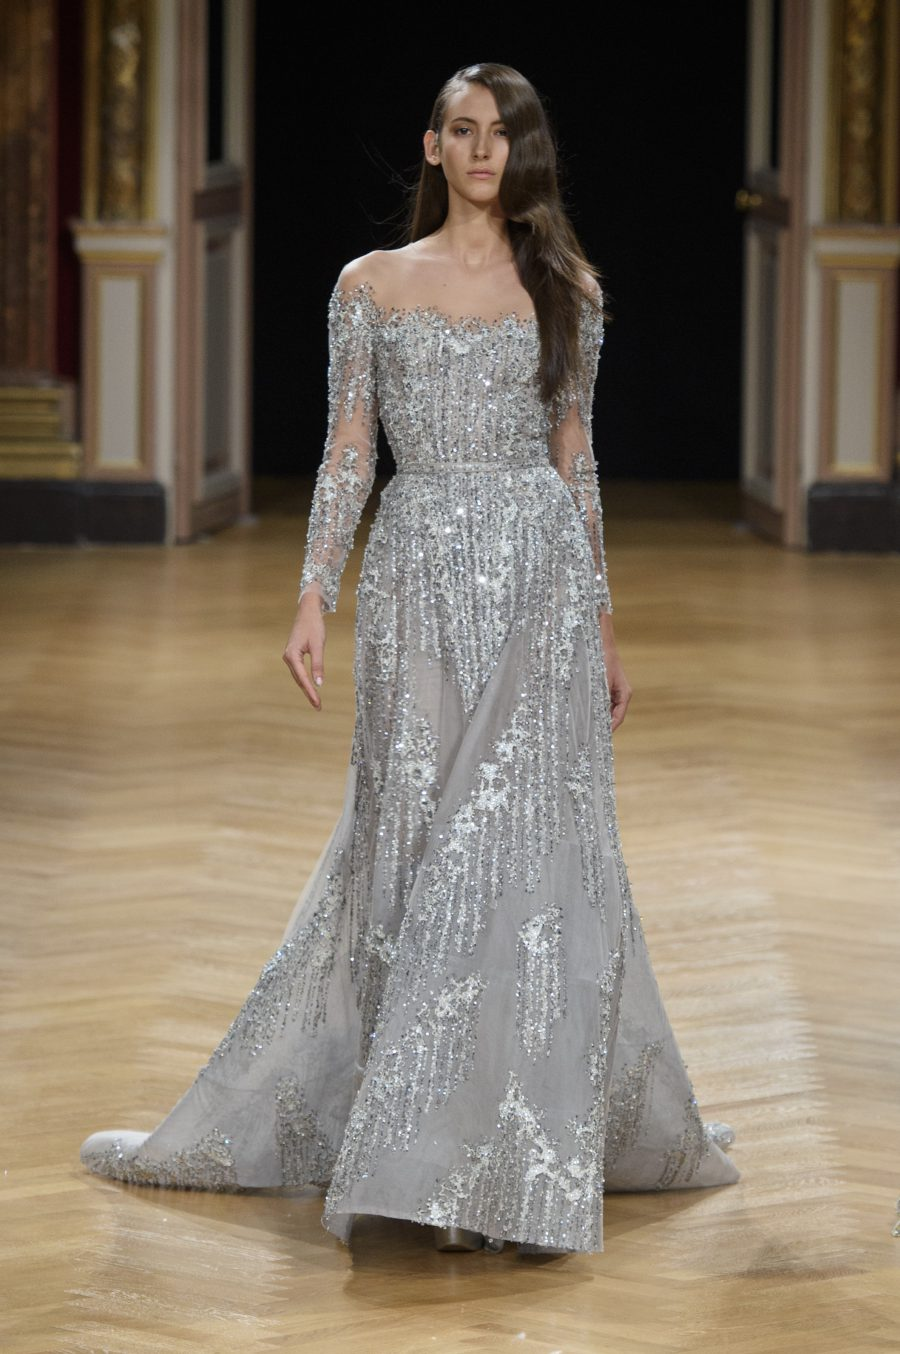 Ziad Nakad Evening And Bridal Dresses For Fall-Winter 2019